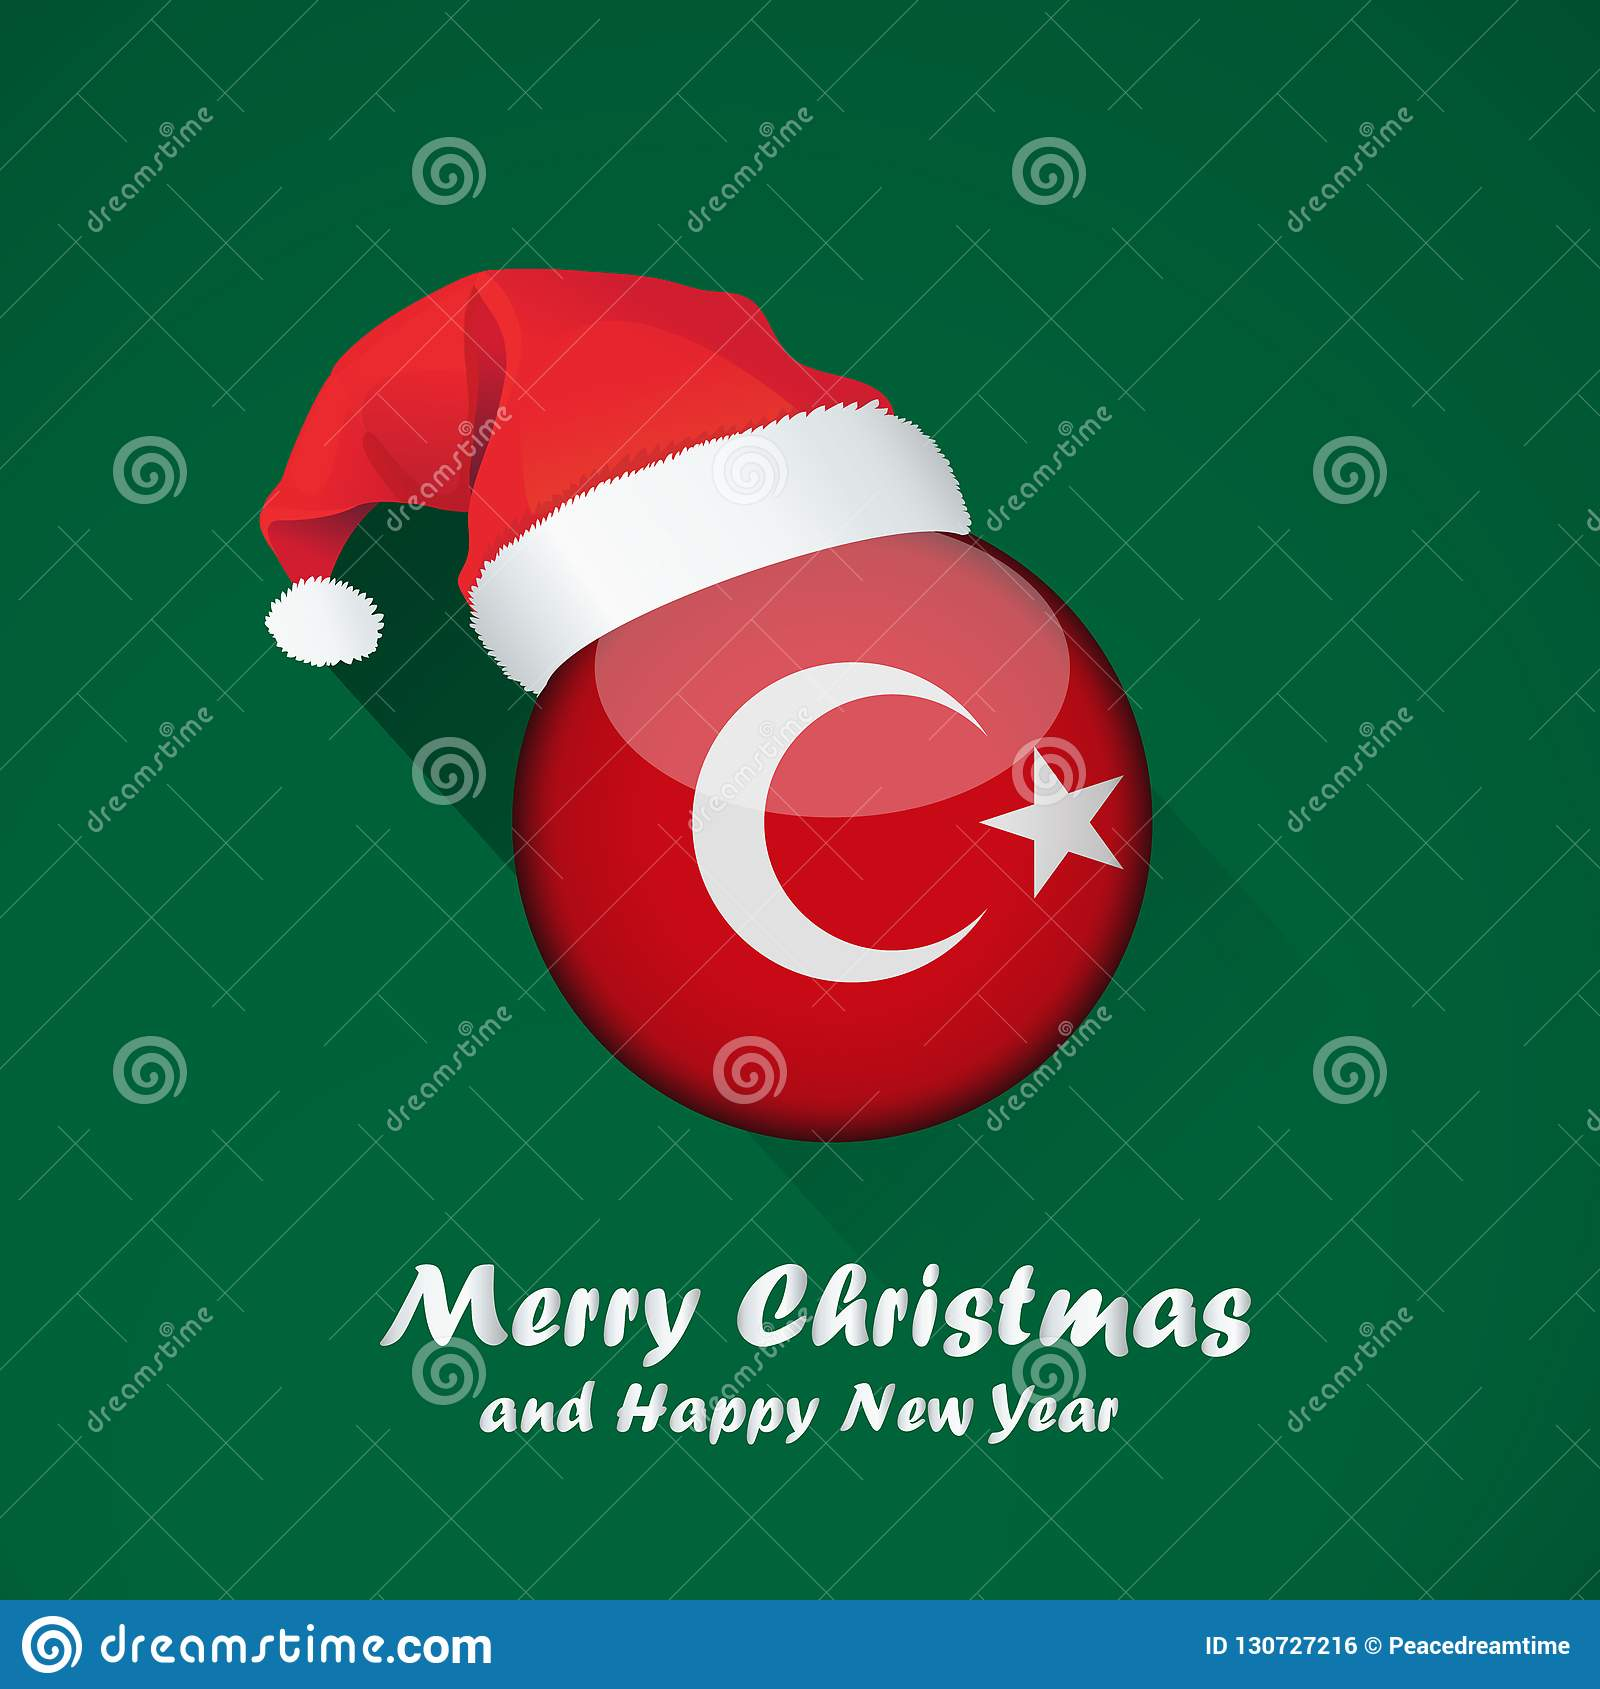 merry christmas and happy new year background design with glossy round flag of turkey vector illustration